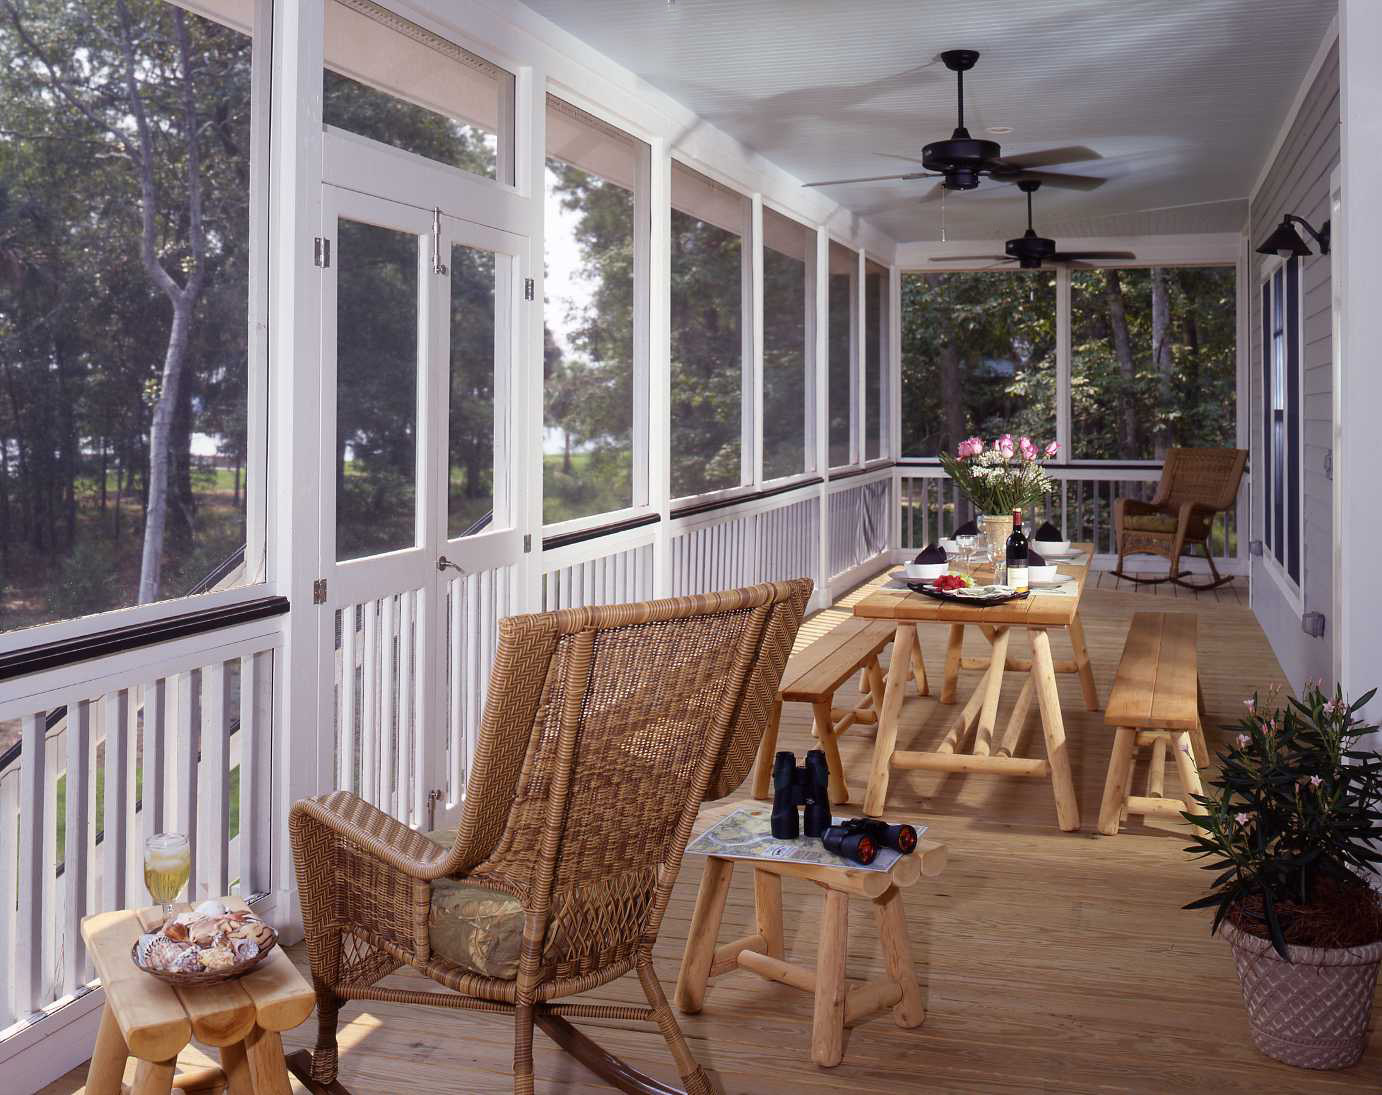 wraparound porch lazy days on wrap around porches nicole cohen 849